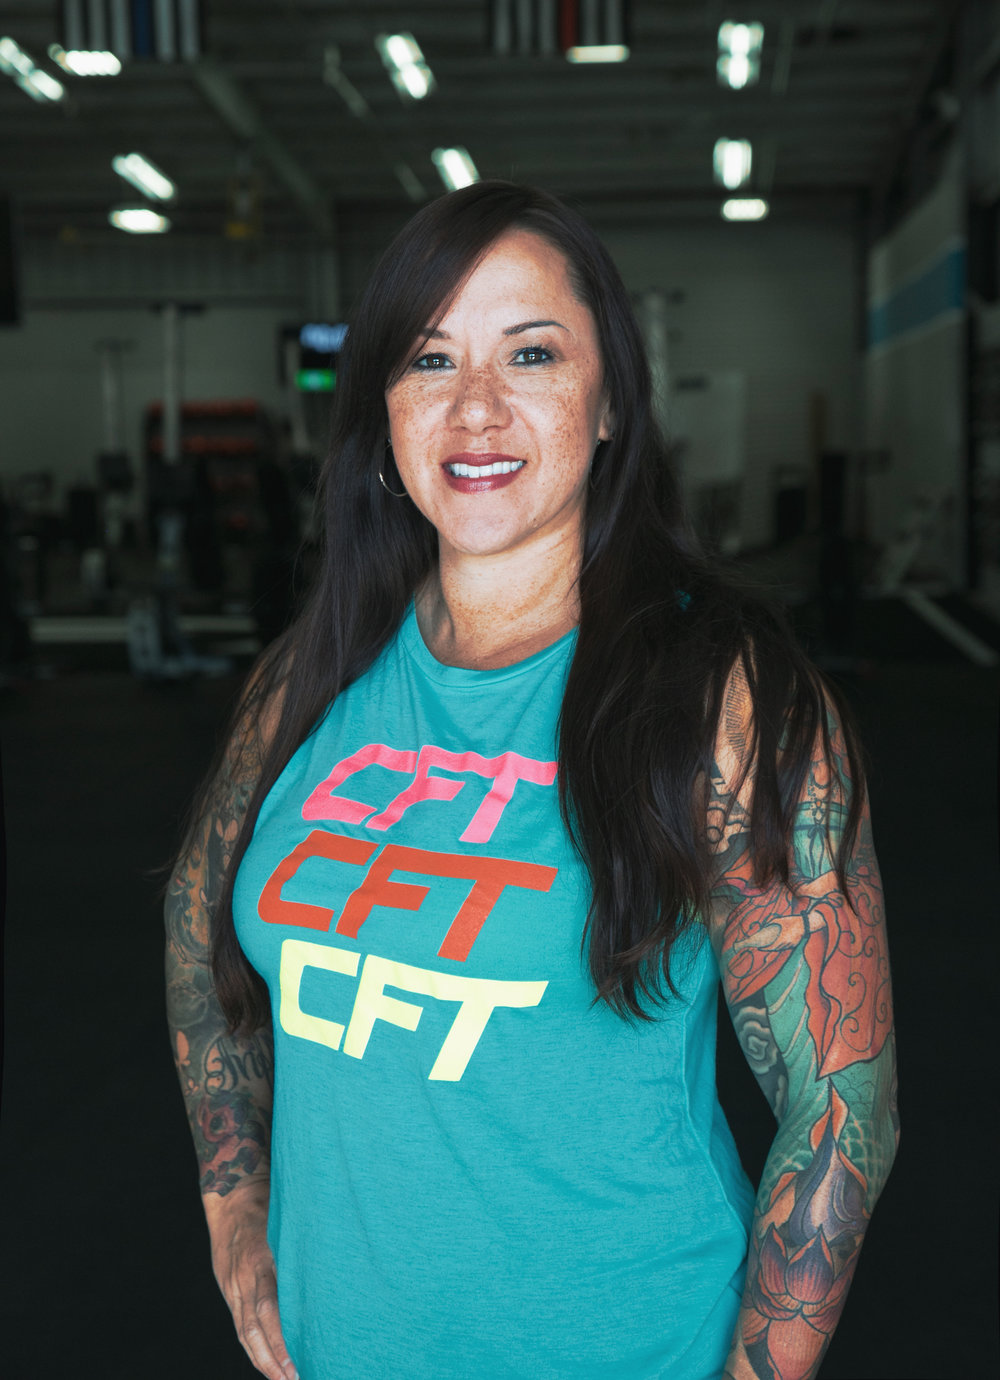 Hello! I'm Laurie Smith. - I got into coaching because I enjoy working with people in a positive way to help them make health changes in their lives. It's always rewarding watching someone transform their lives through fitness.I'm a closet ''crossfitter'' who competes in powerlifting. Before powerlifting I competed in Olympic lifting.We all started somewhere....why not now?Book a session with Laurie ➝